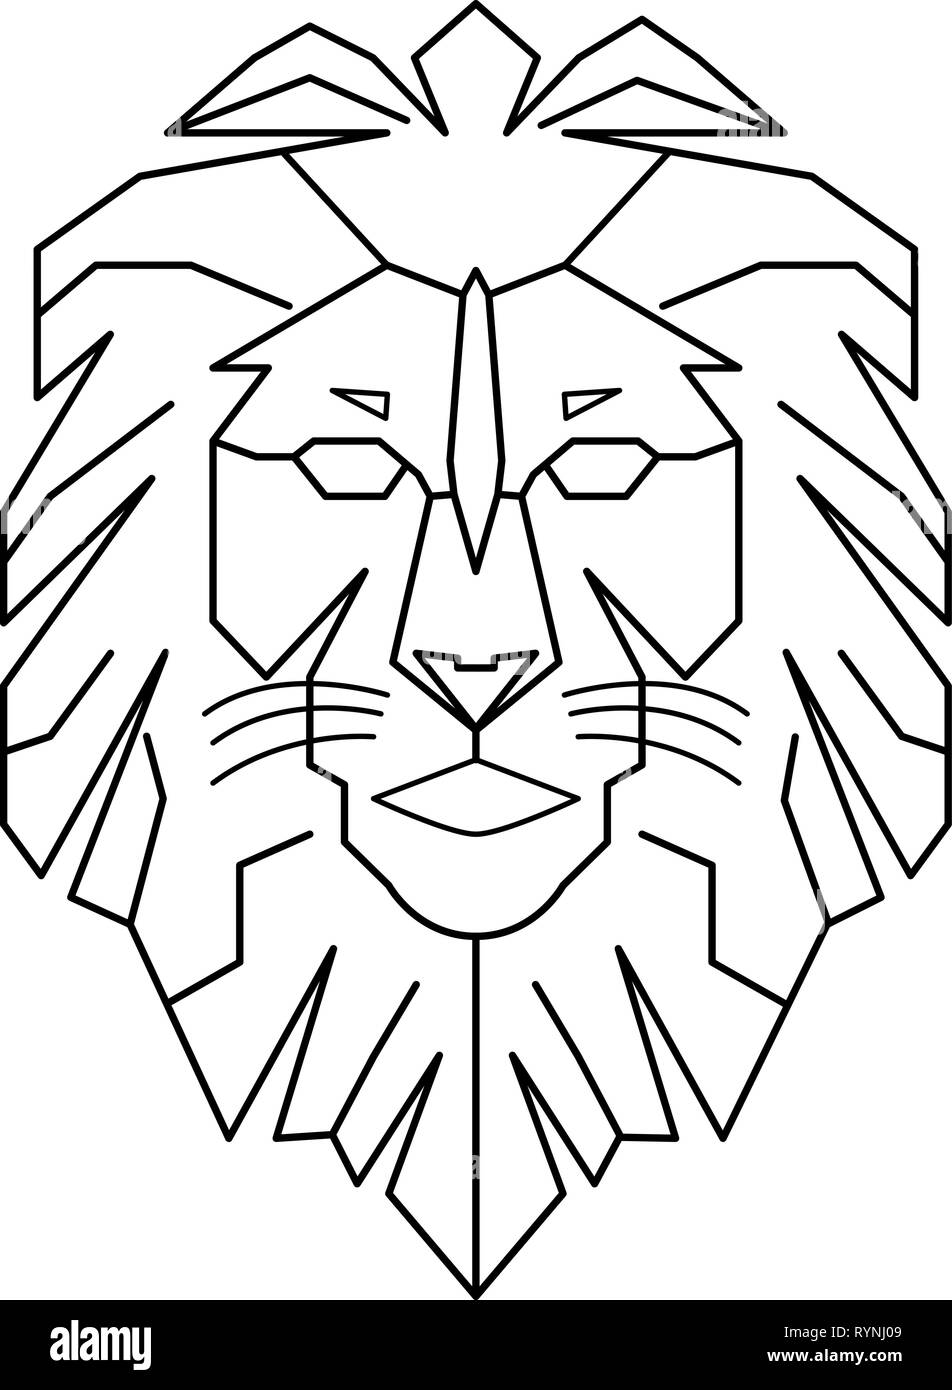 Lion Outline Design : Find the perfect lion outline stock photos and editorial news pictures from getty images.